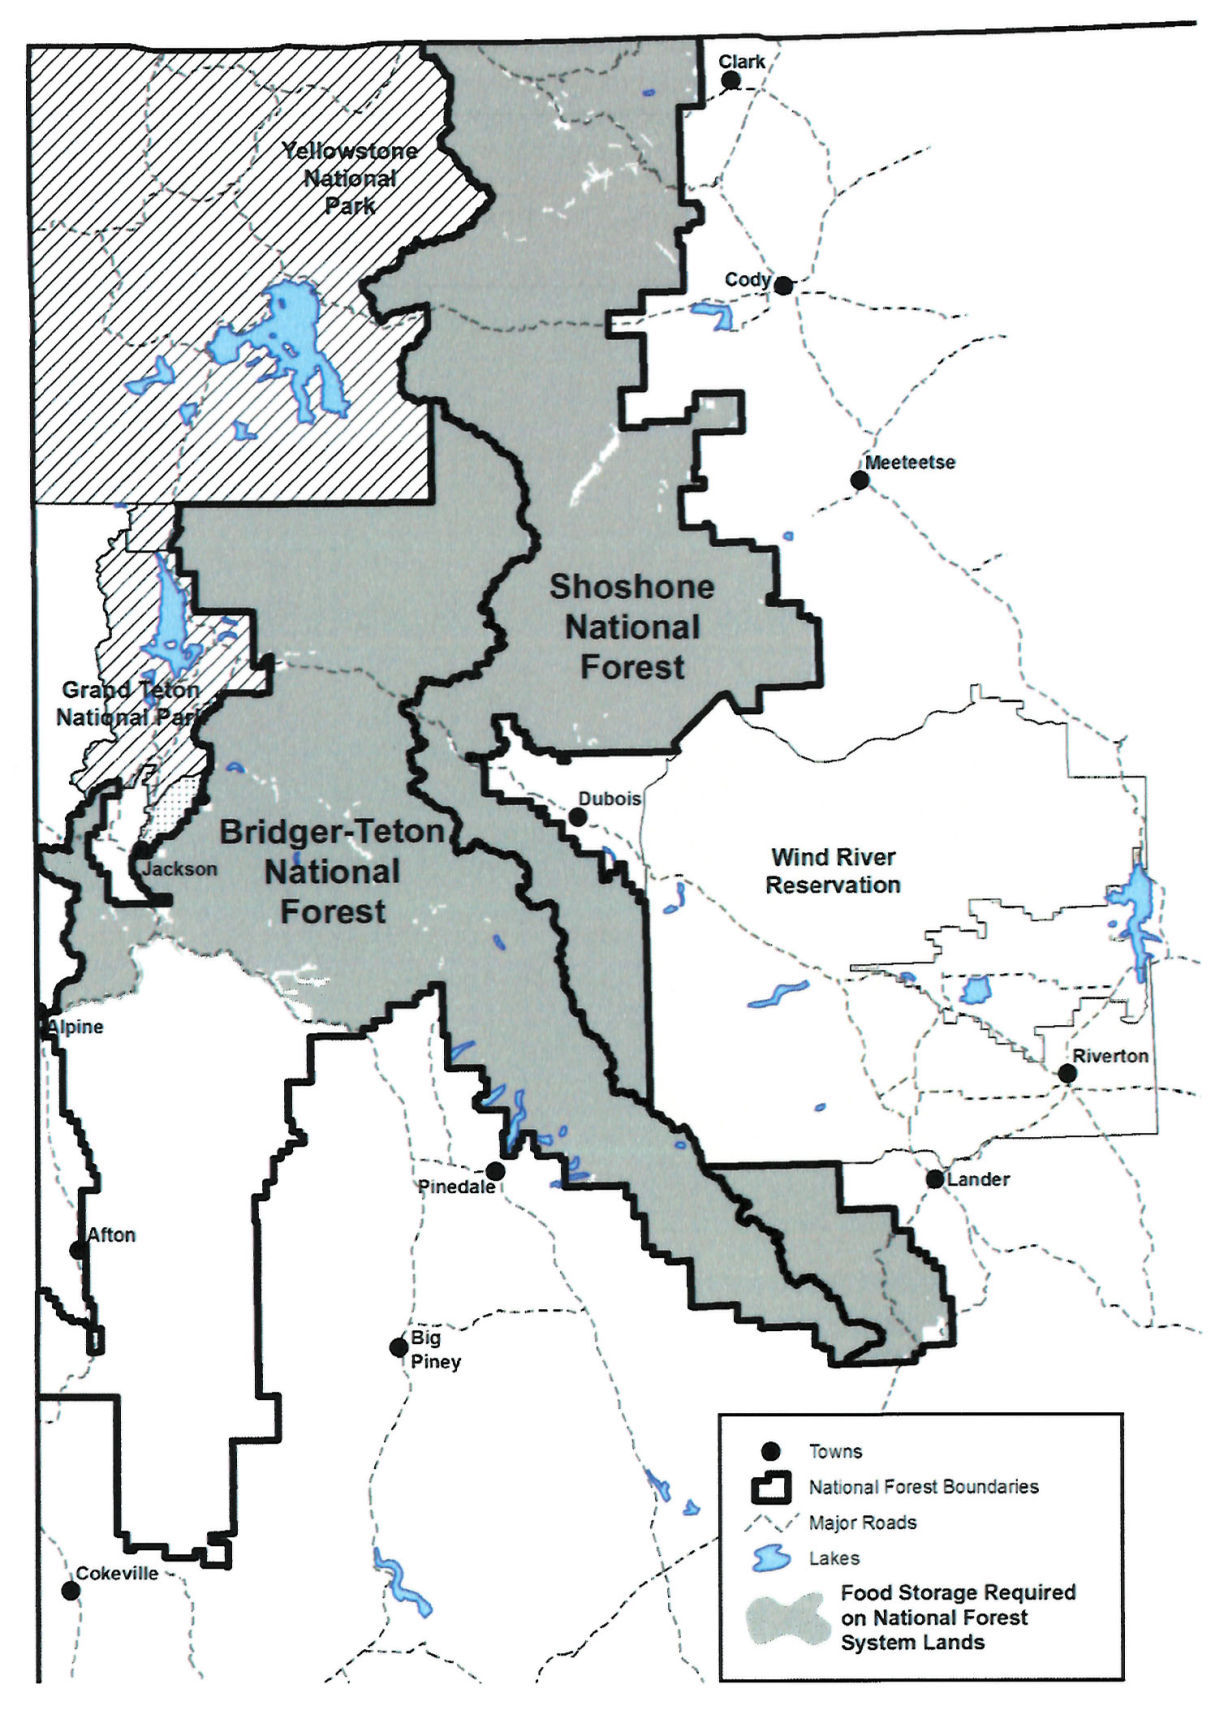 Required Food Storage Rules On The Bridger Teton And Shoshone National  Forests Have Been Expanded To Include The Entire Wind River Range.